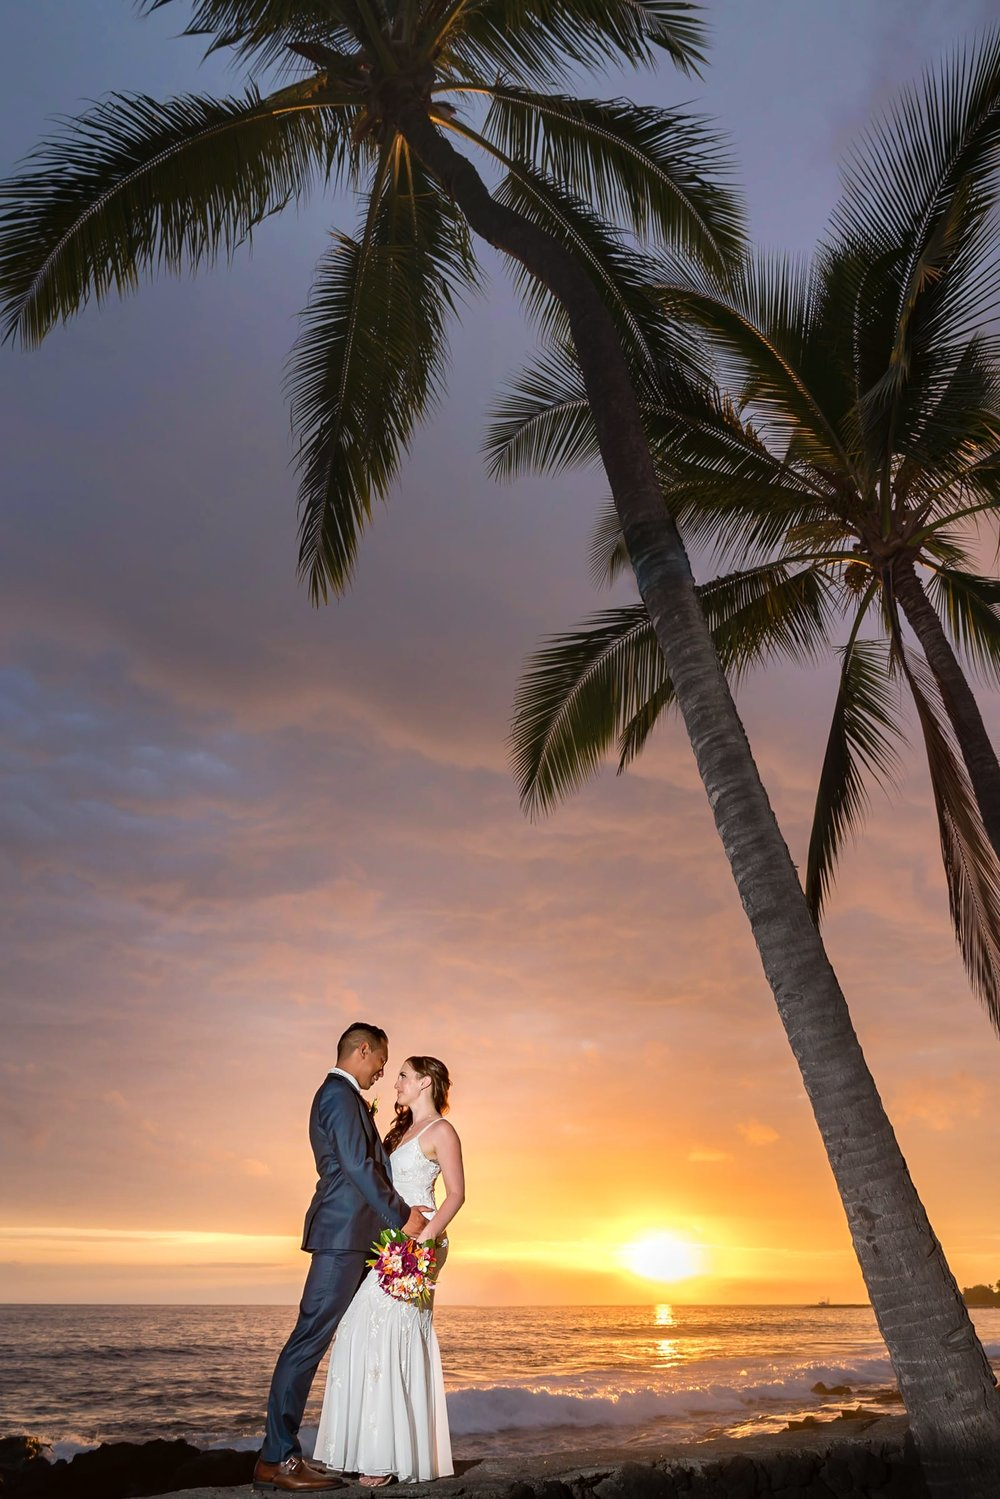 Big-Island-Hawaii-Jade-Keyes-Derrick-Alig-Daylight-Mind-Kailua-Kona-Hawaii-Wedding18.jpg